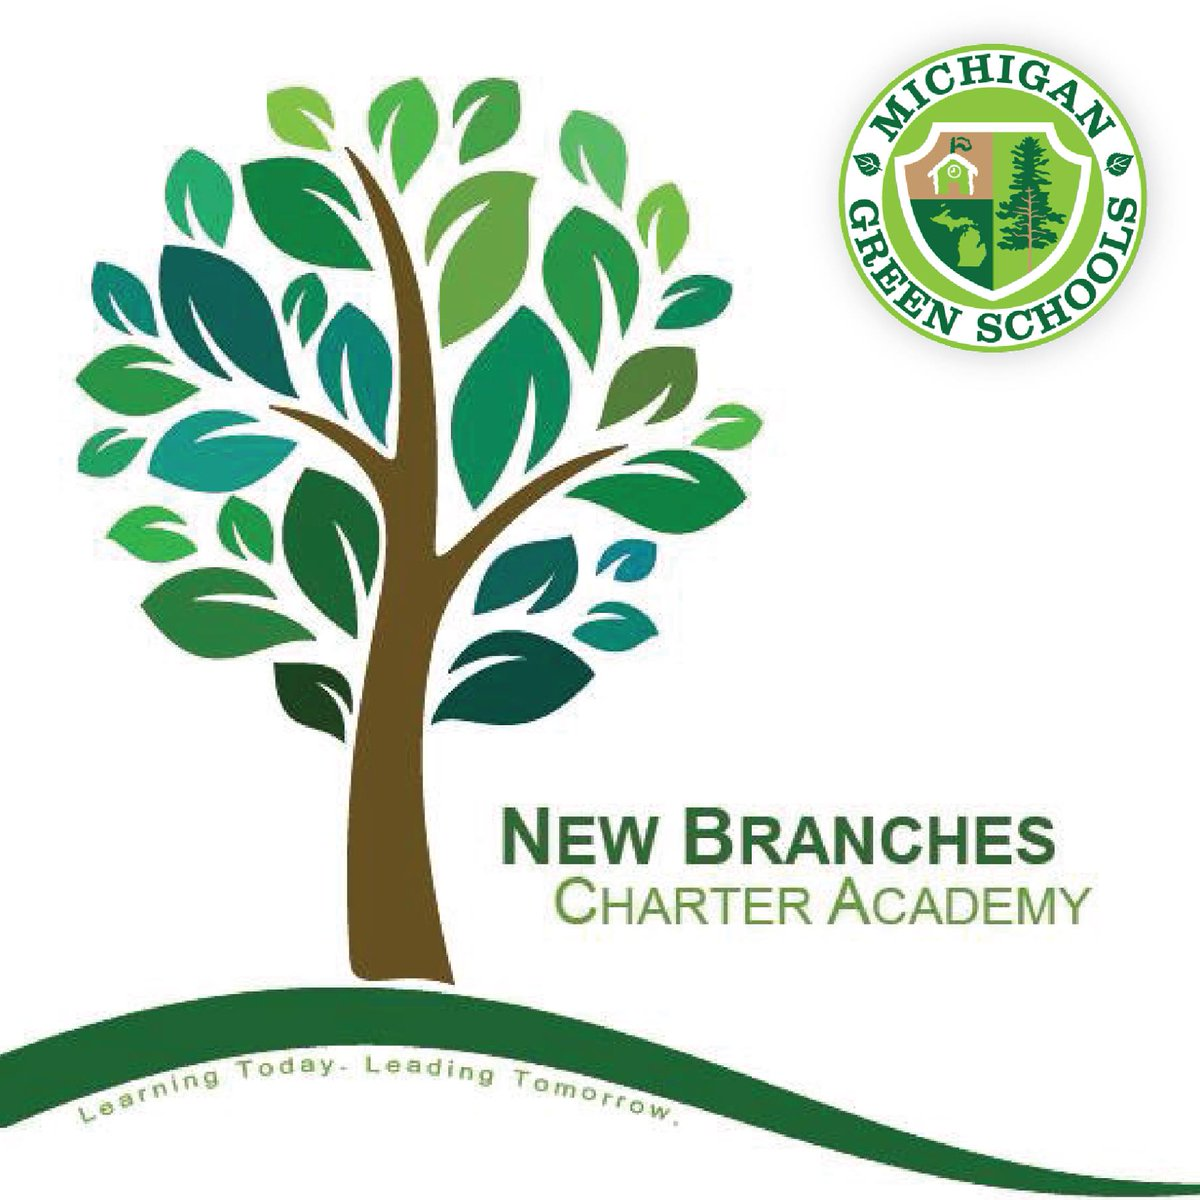 We see you, @NewBranchesAcad. Thanks for registering for Youth Summit 2019! Register your school today: http://events.r20.constantcontact.com/register/event?oeidk=a07efwn64vd34ad71b5&llr=dngybieab&fbclid=IwAR0t8mCz6TgI2S0NxYvSu3rvbipI-EnLaW6iAw--YRV57aDyLDw7gK-TC0g…  #InfluencersUnleashed #SummitNation pic.twitter.com/J9DW4Z7JXd